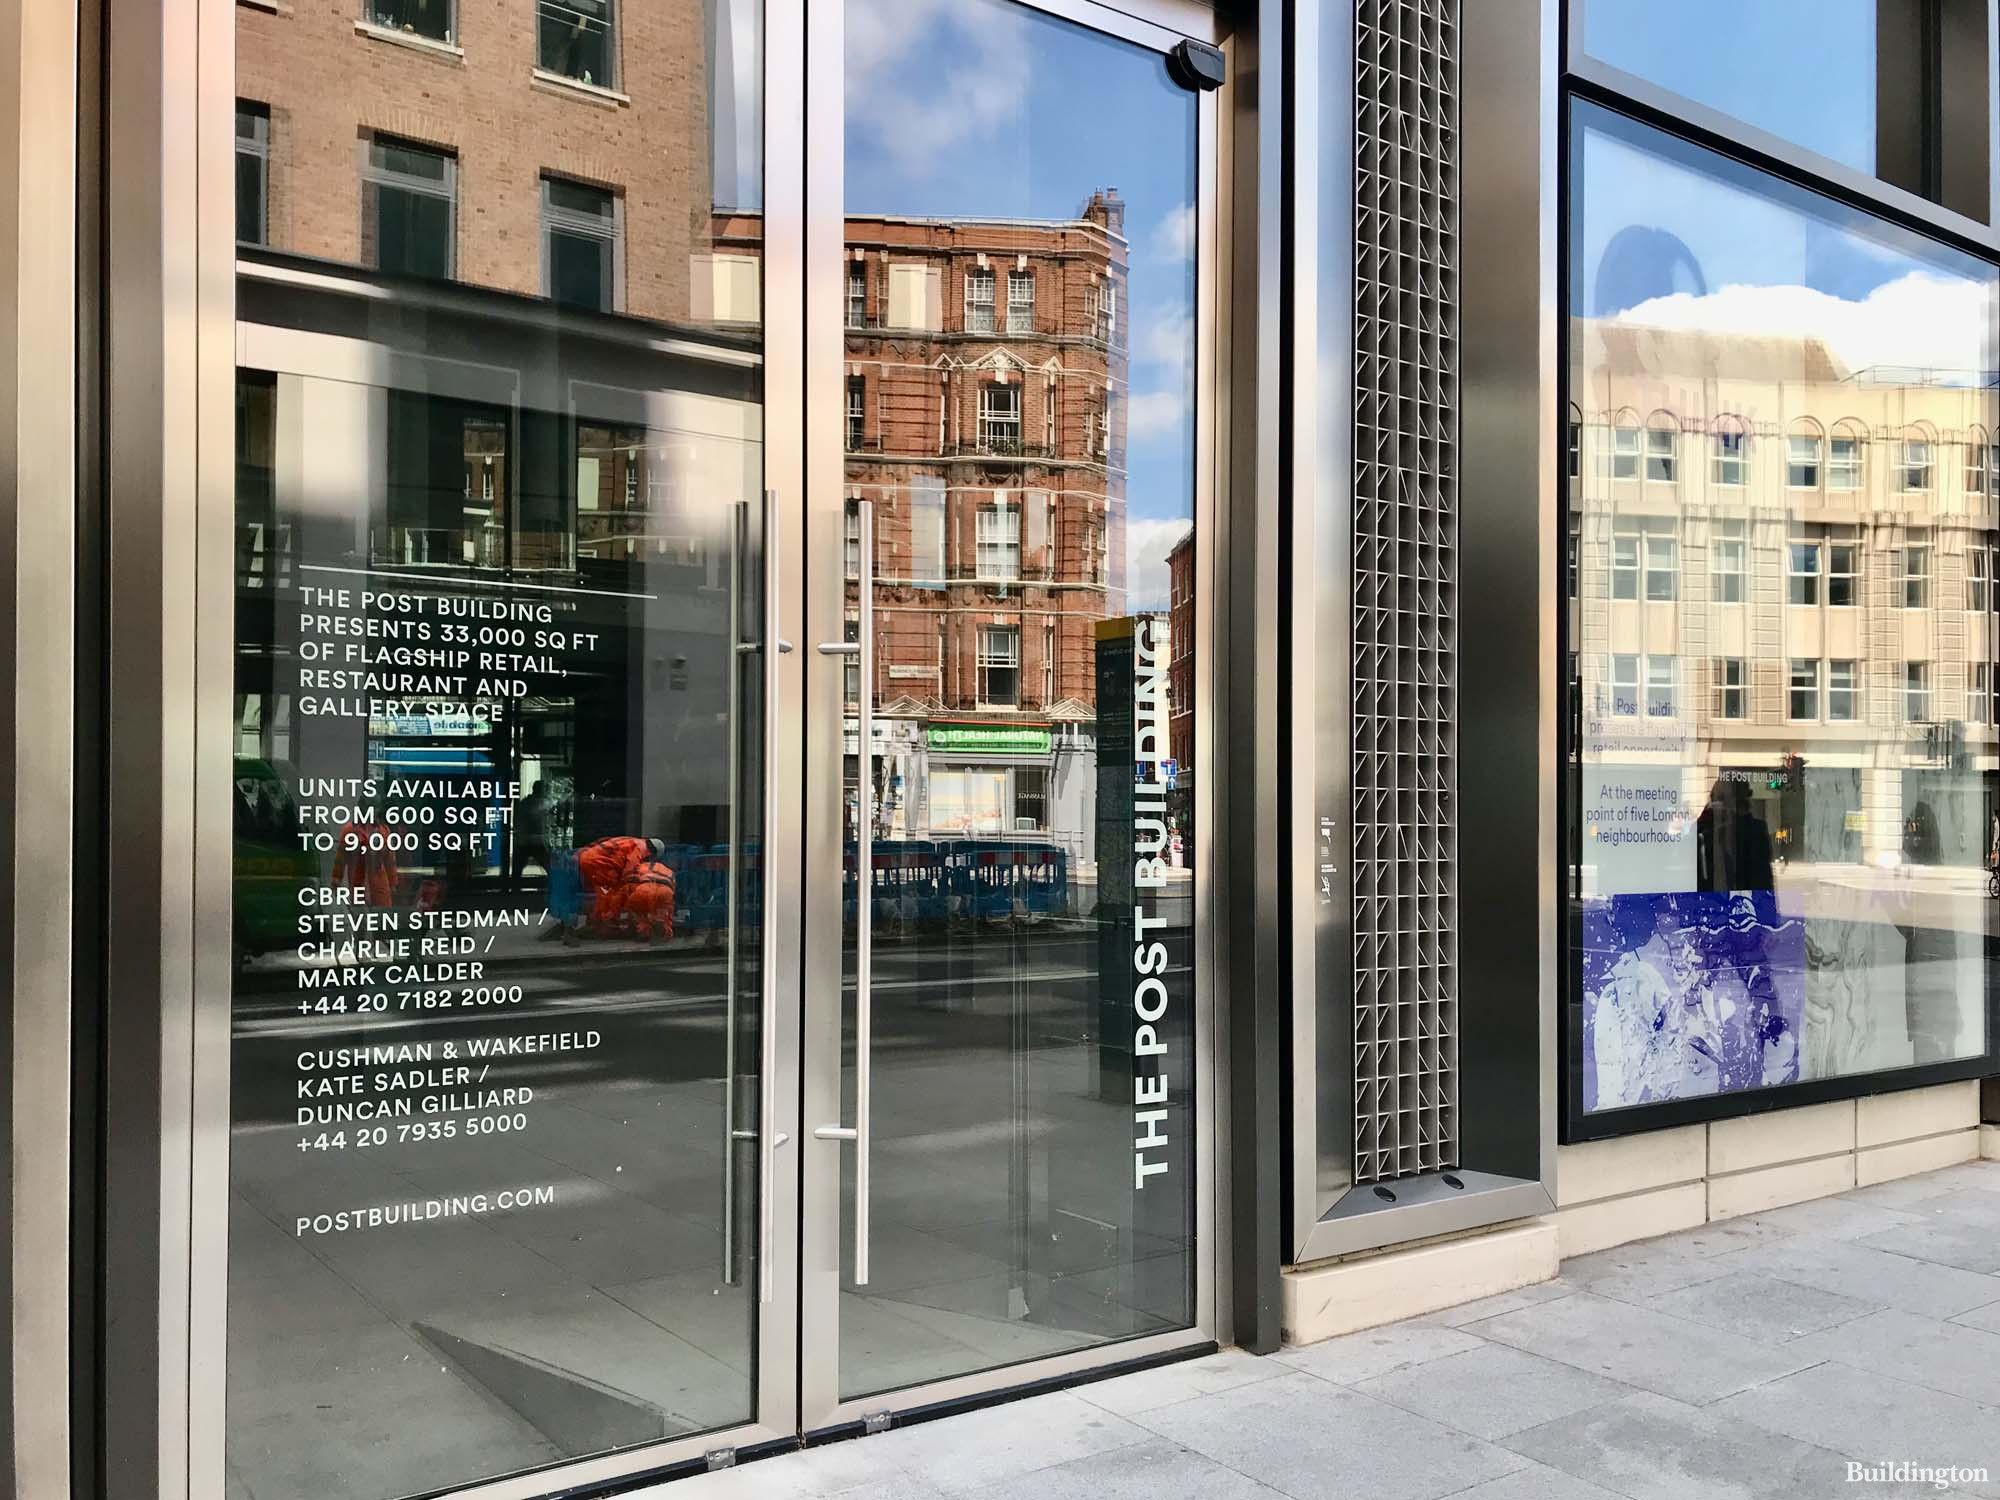 Commercial units available at The Post Building advertised by Cushman & Wakefield and CBRE.